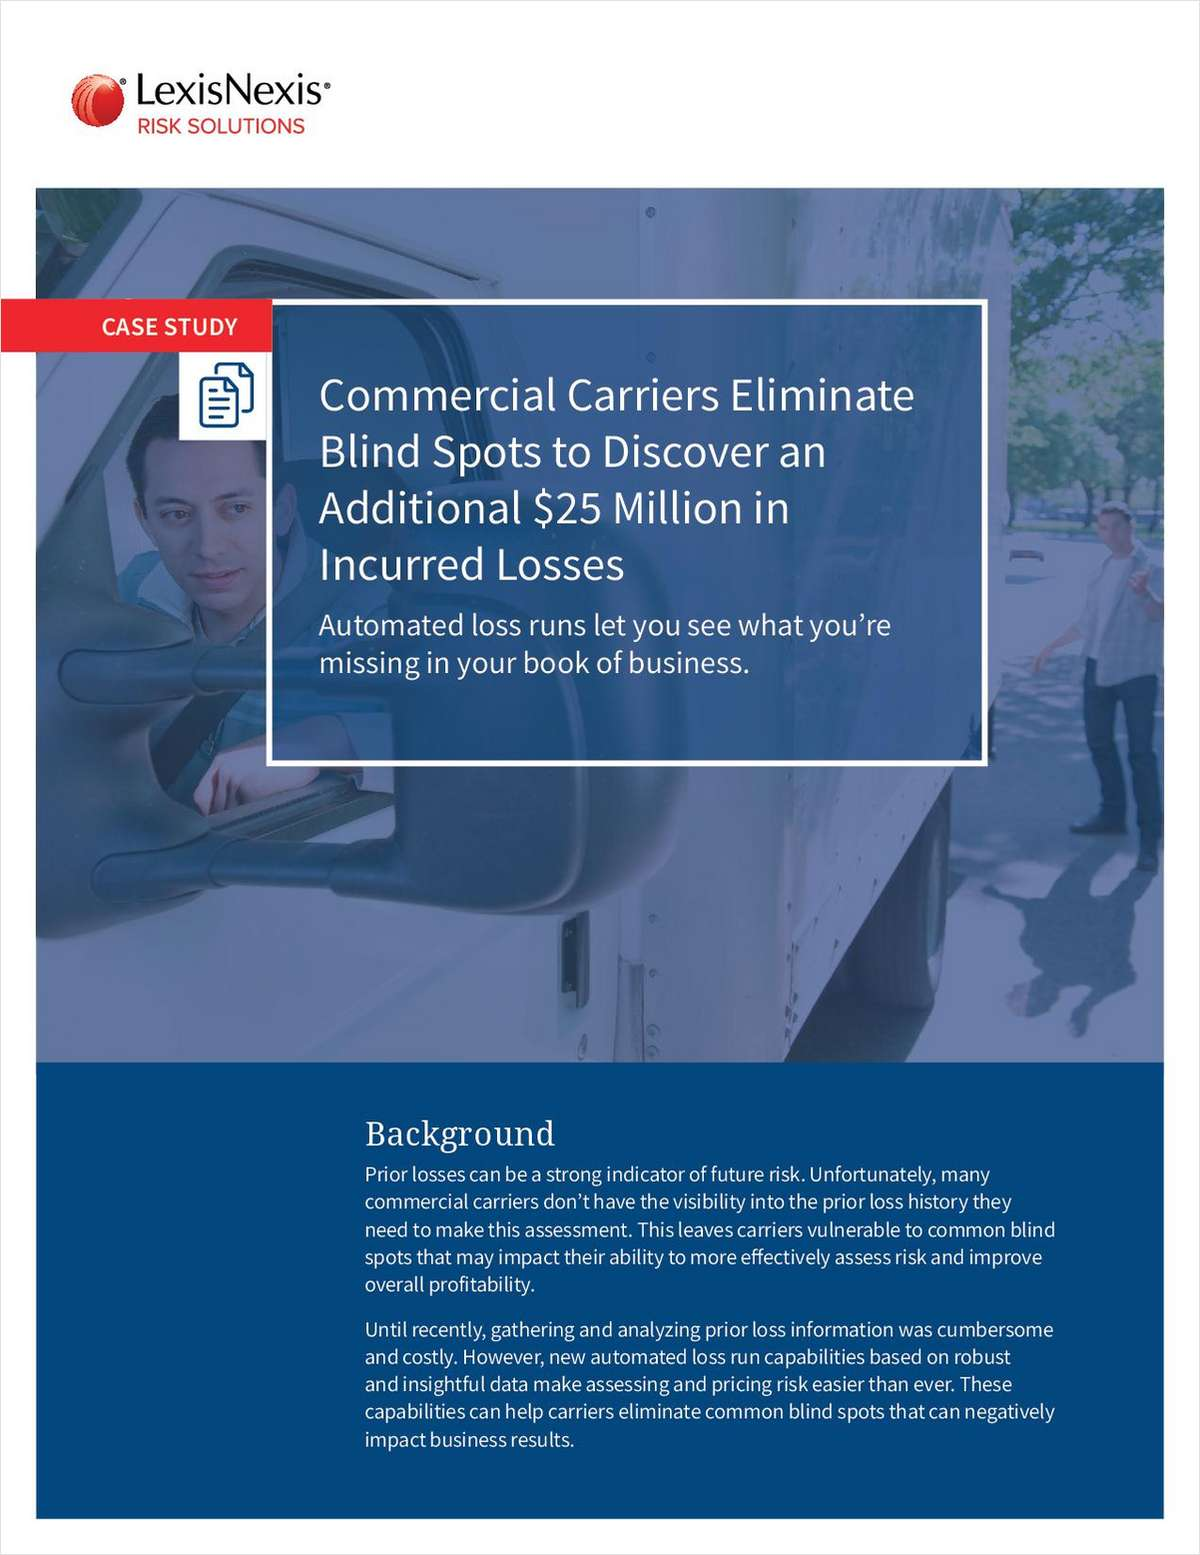 Automated Loss Runs Help Commercial Carriers Eliminate Common Blind Spots